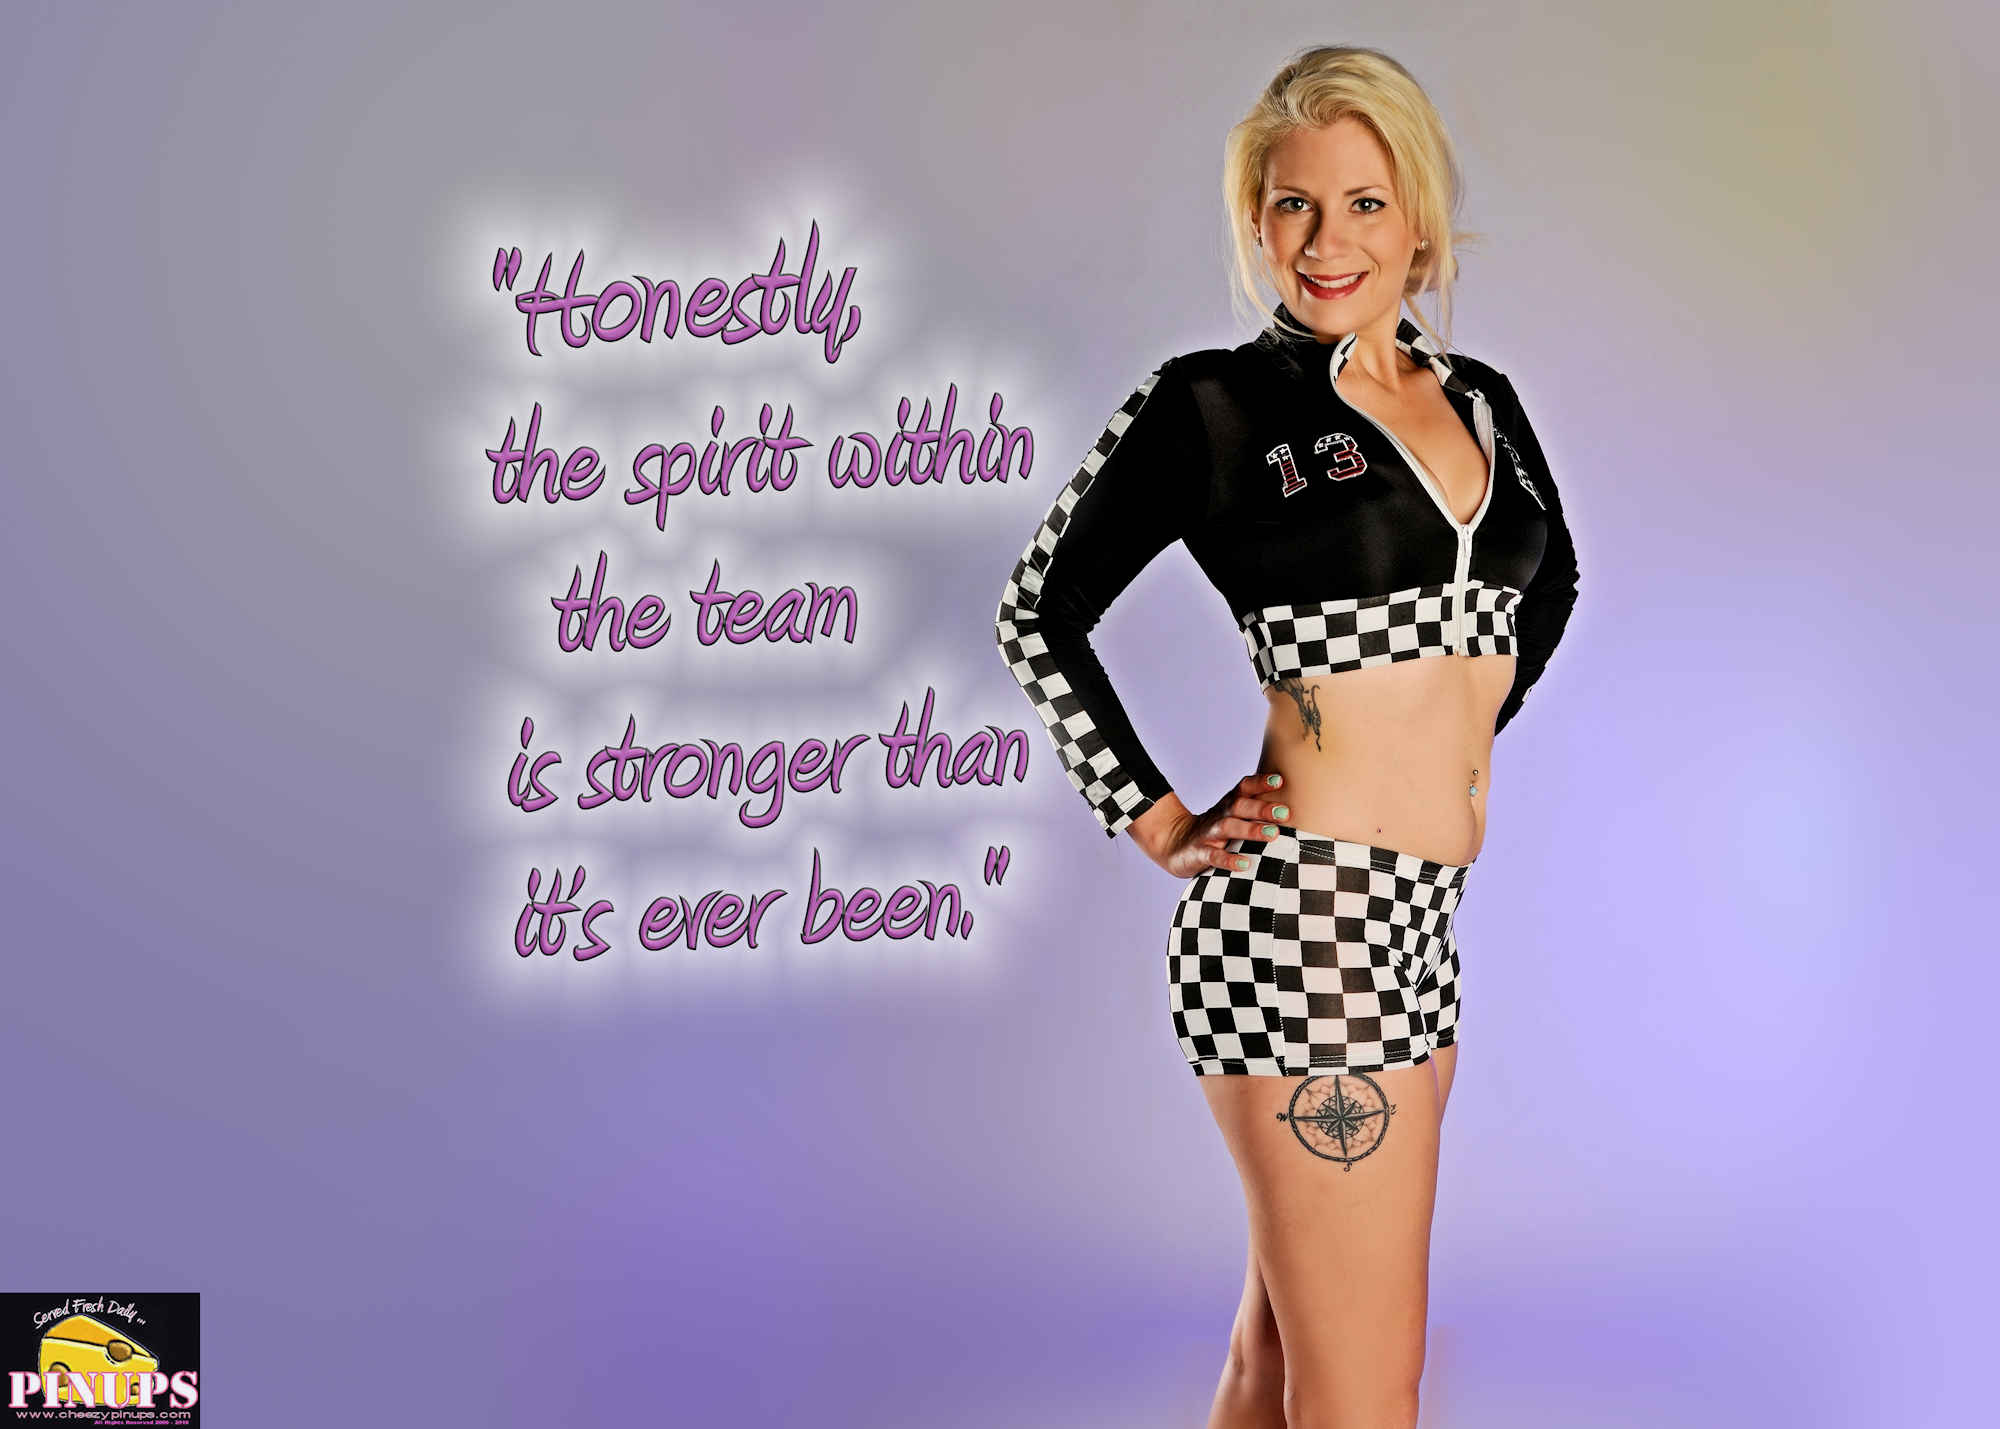 "Cheezy Pinup - June 8, 2018 ""Honestly, the spirit within the team is stronger than it's ever been."" - Lewis Hamilton Model: Nicole"